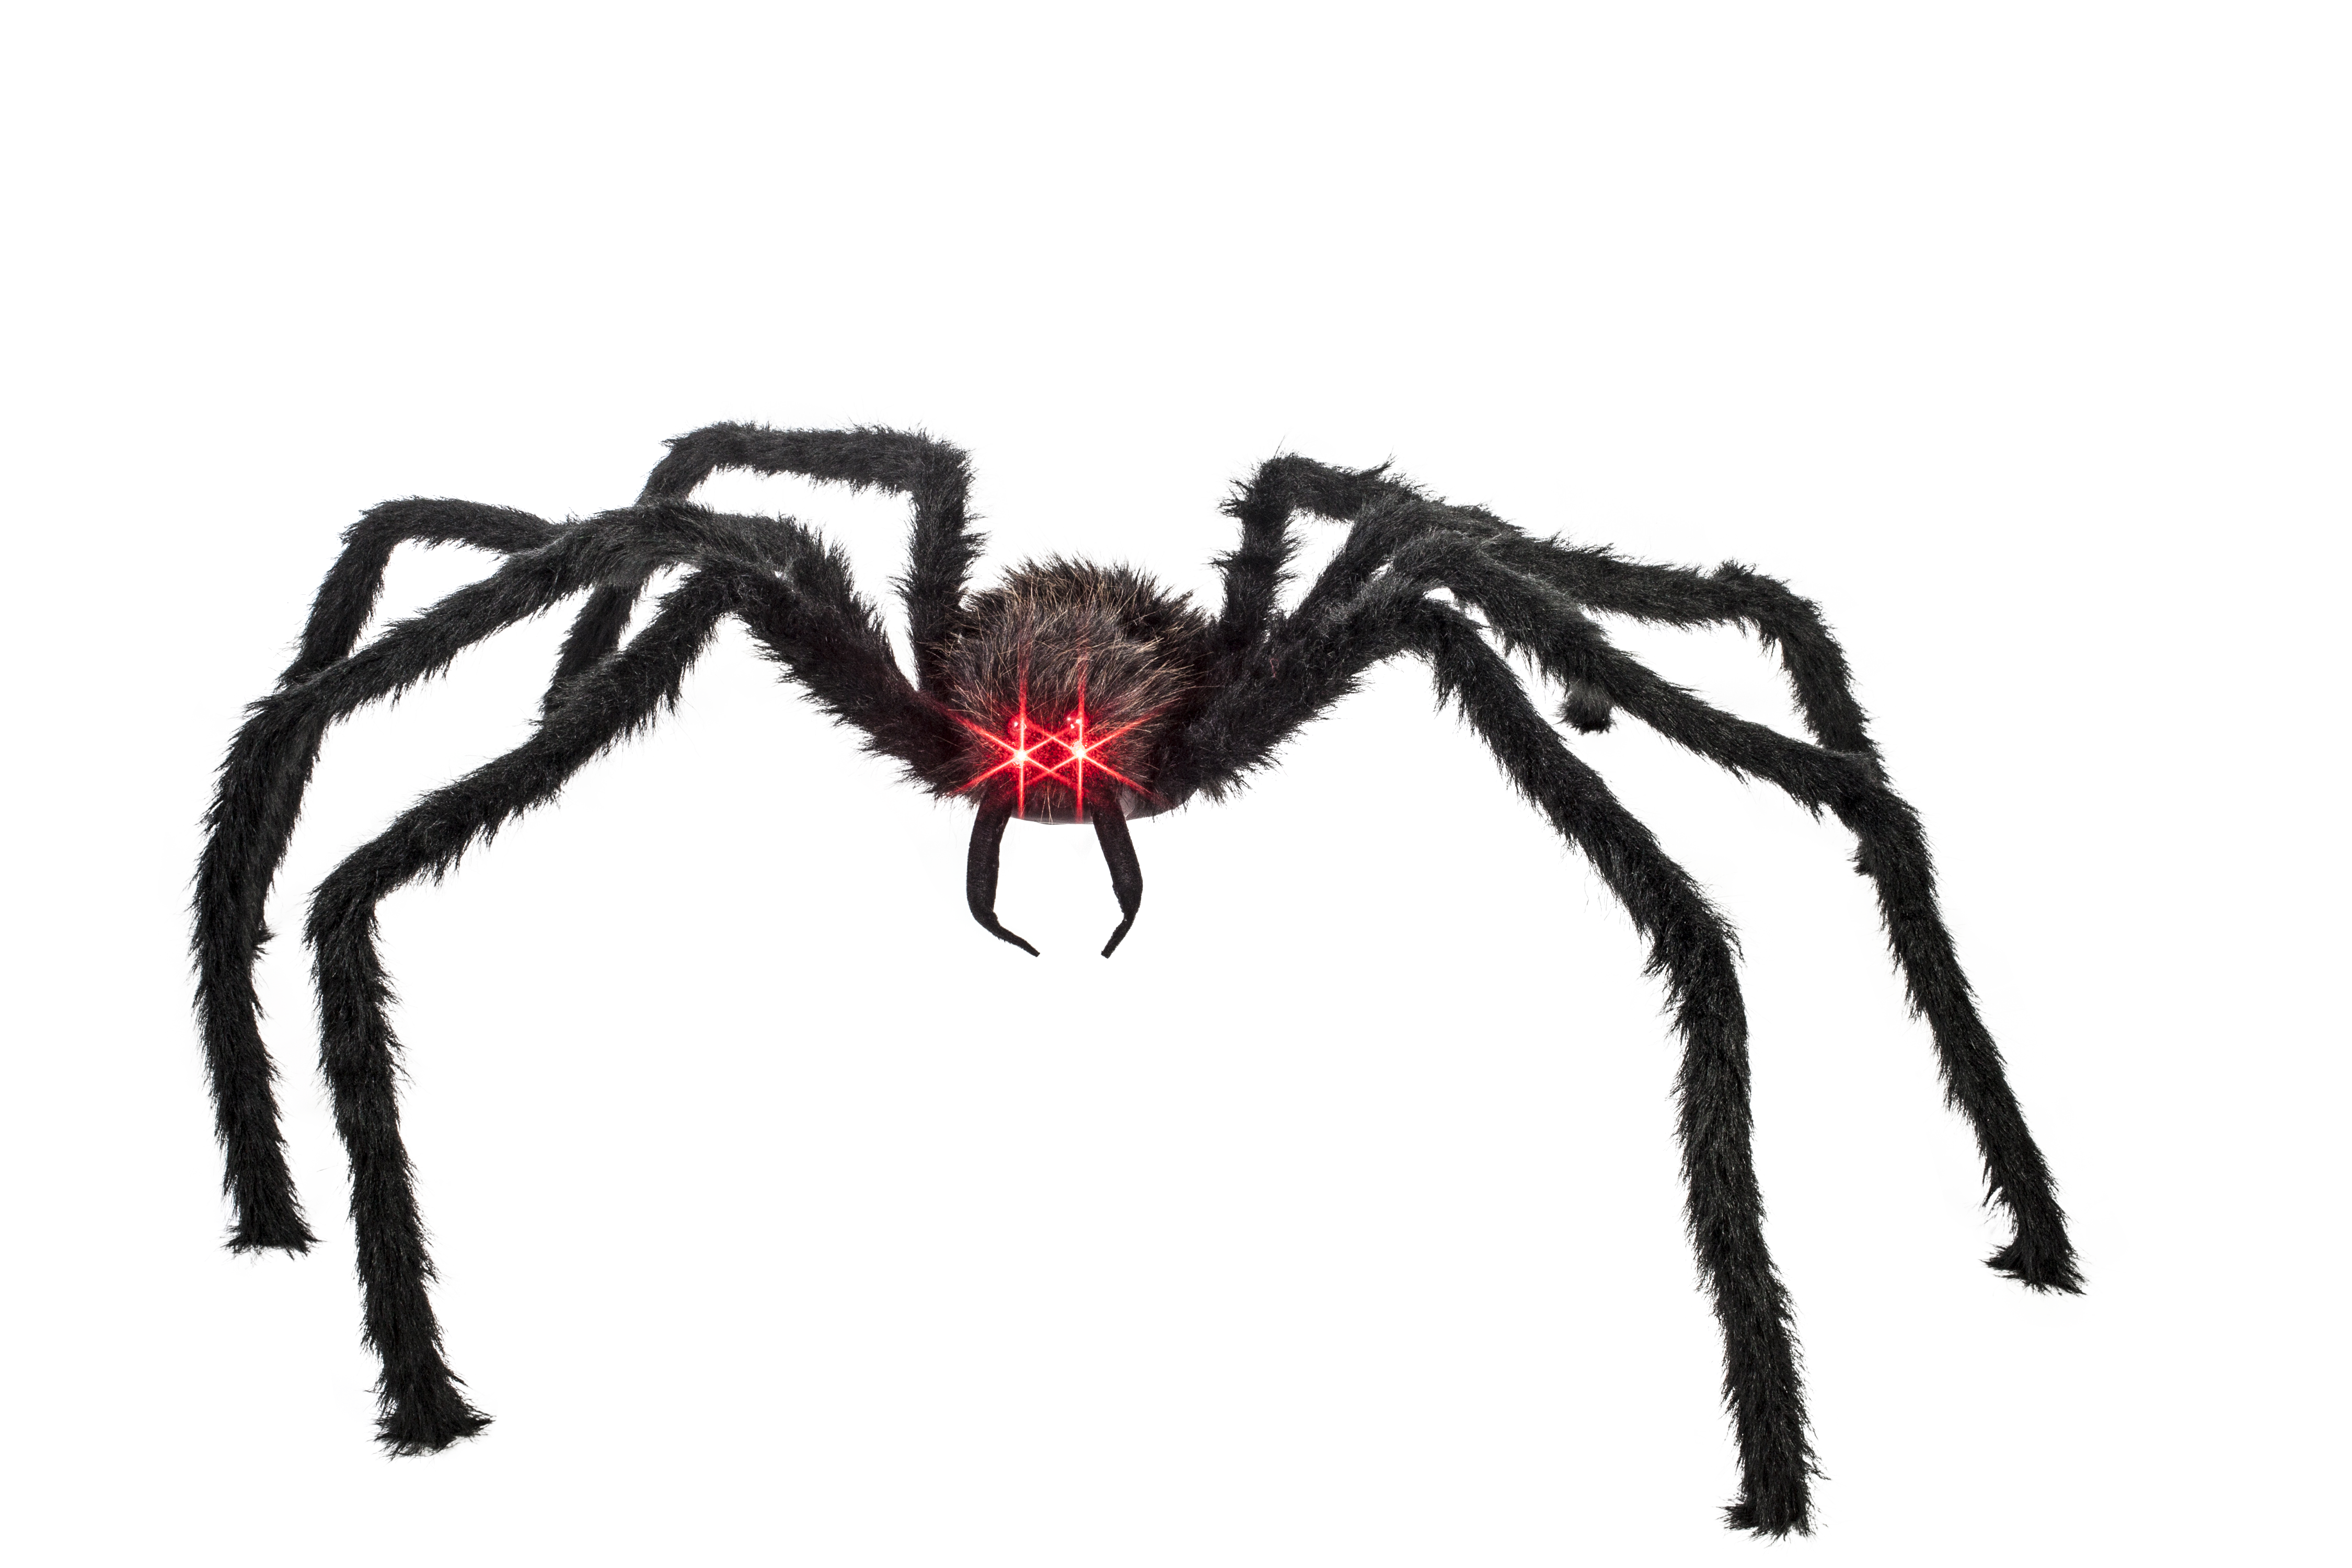 Giant spider png. With lighted red eyes